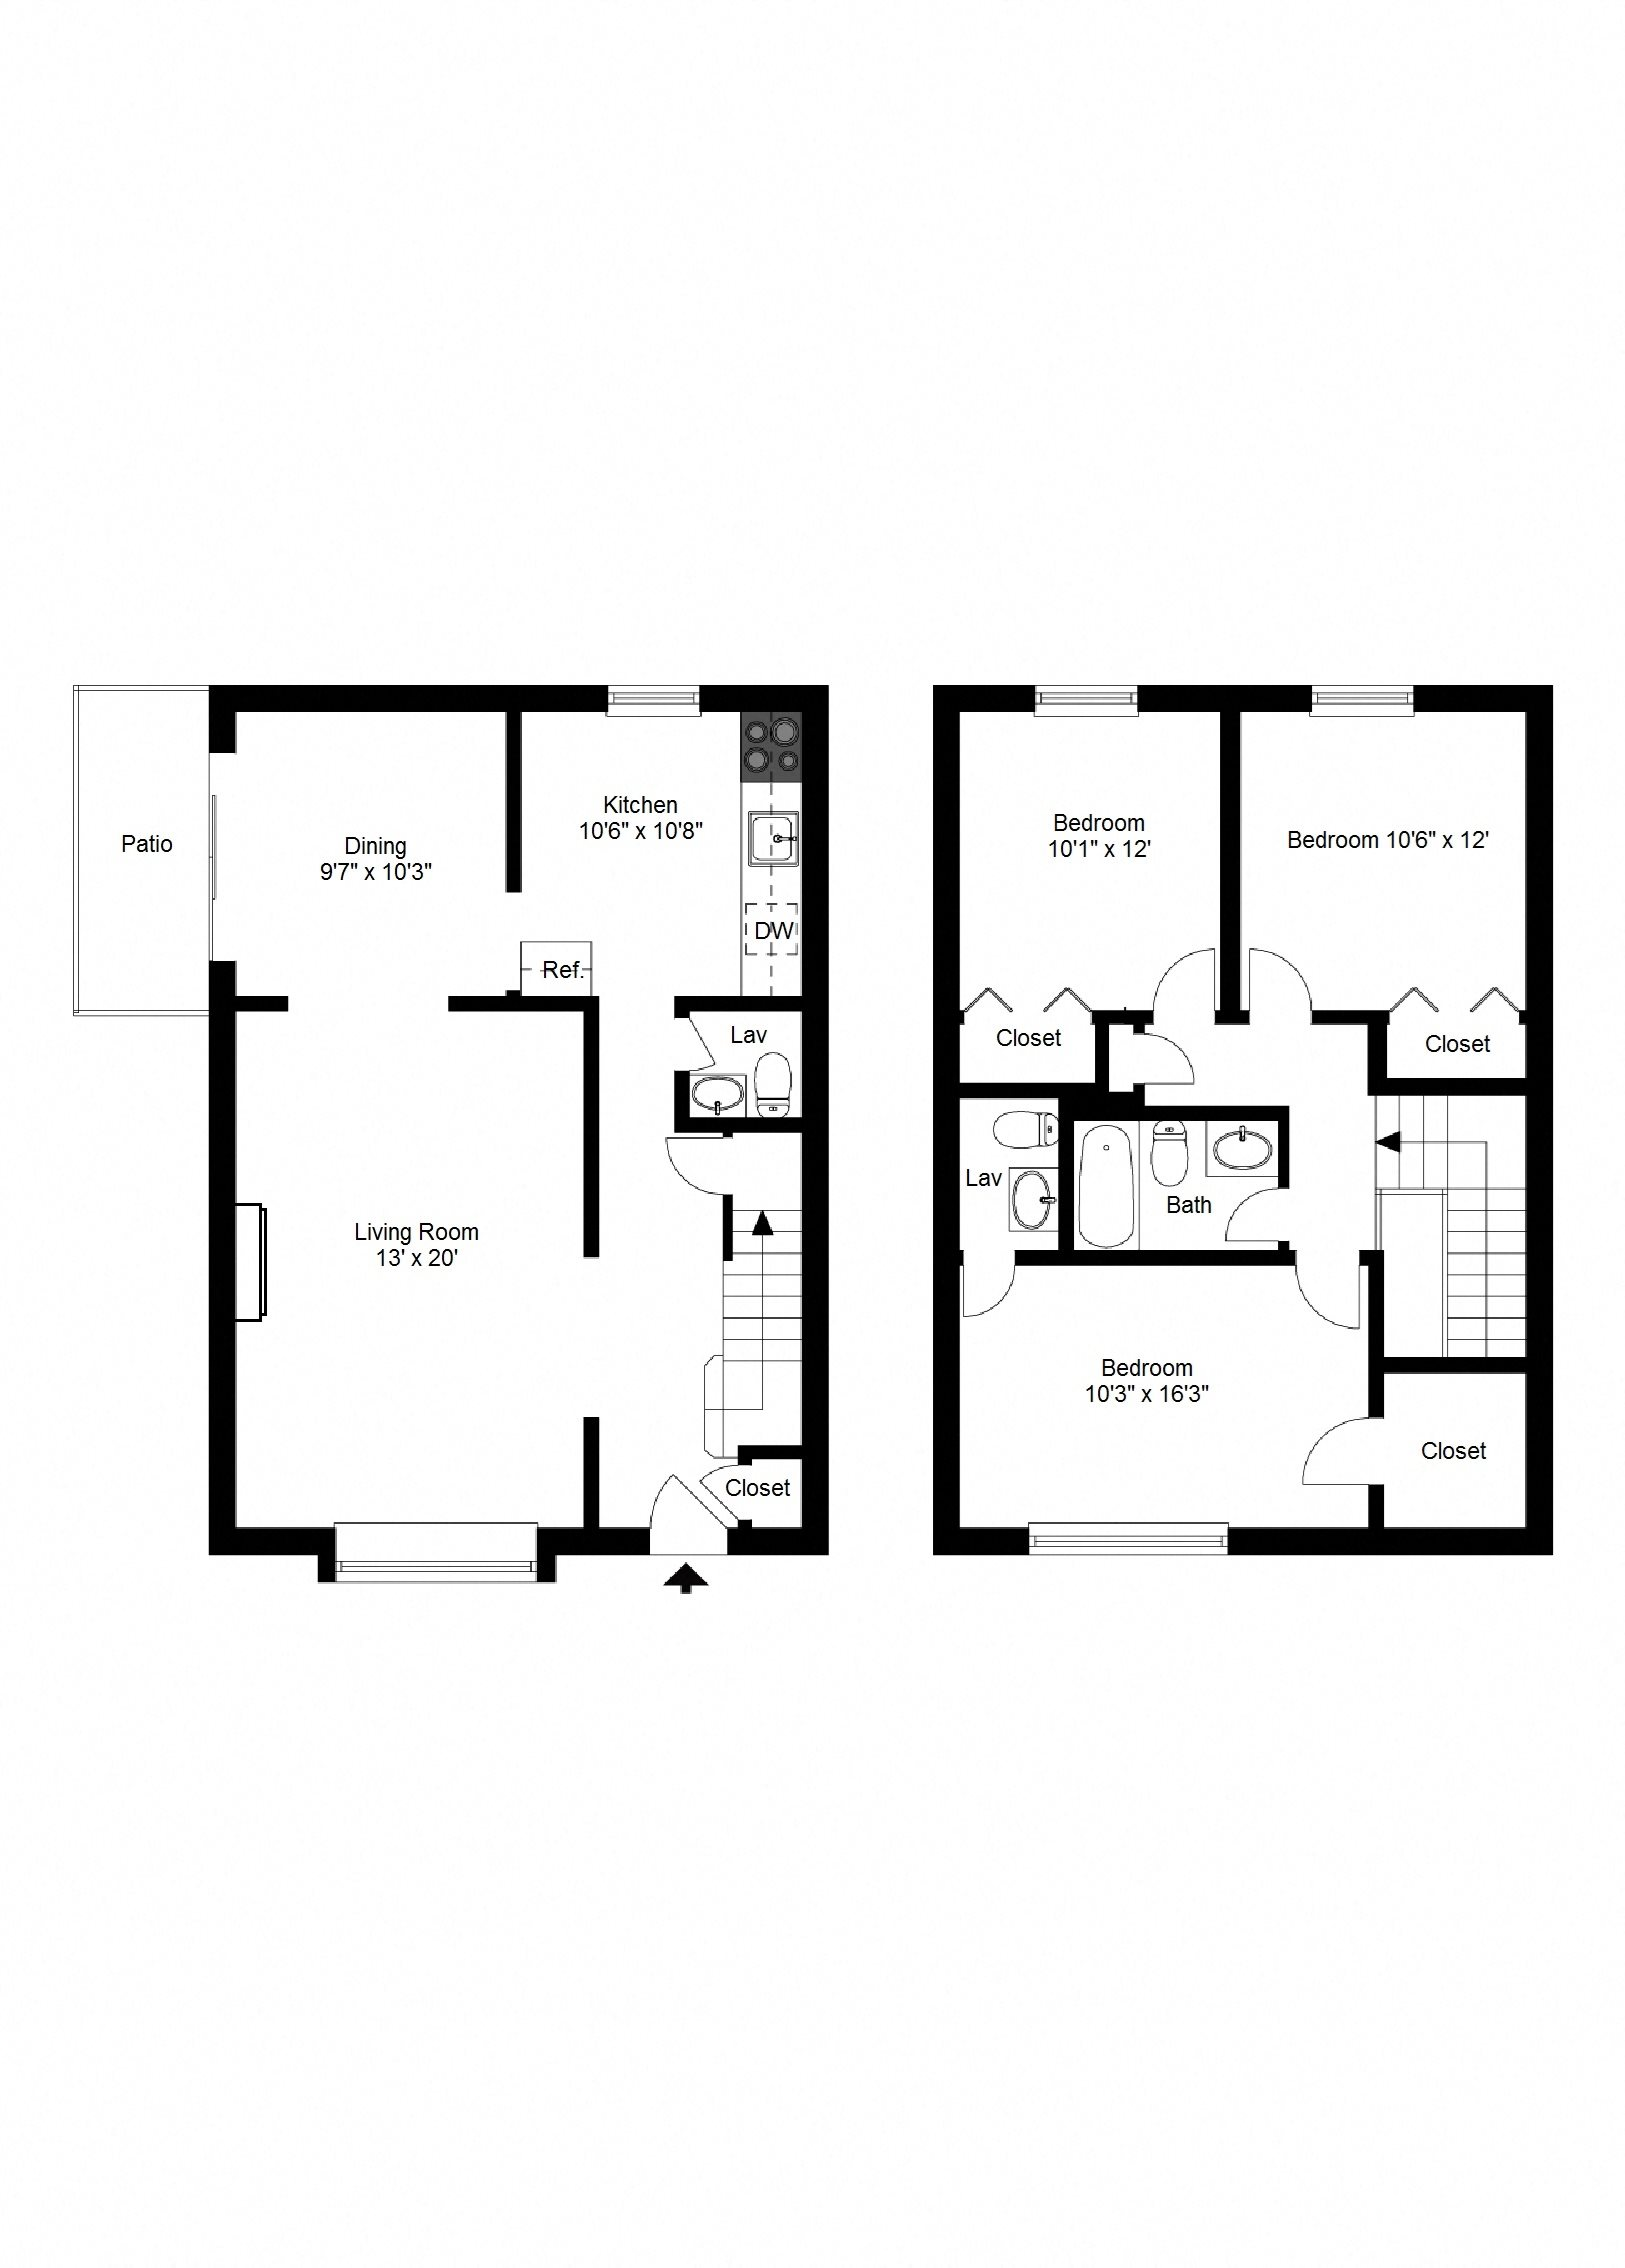 3 Bedroom, 1 Full & 2 Half Baths Townhome Floor Plan 14